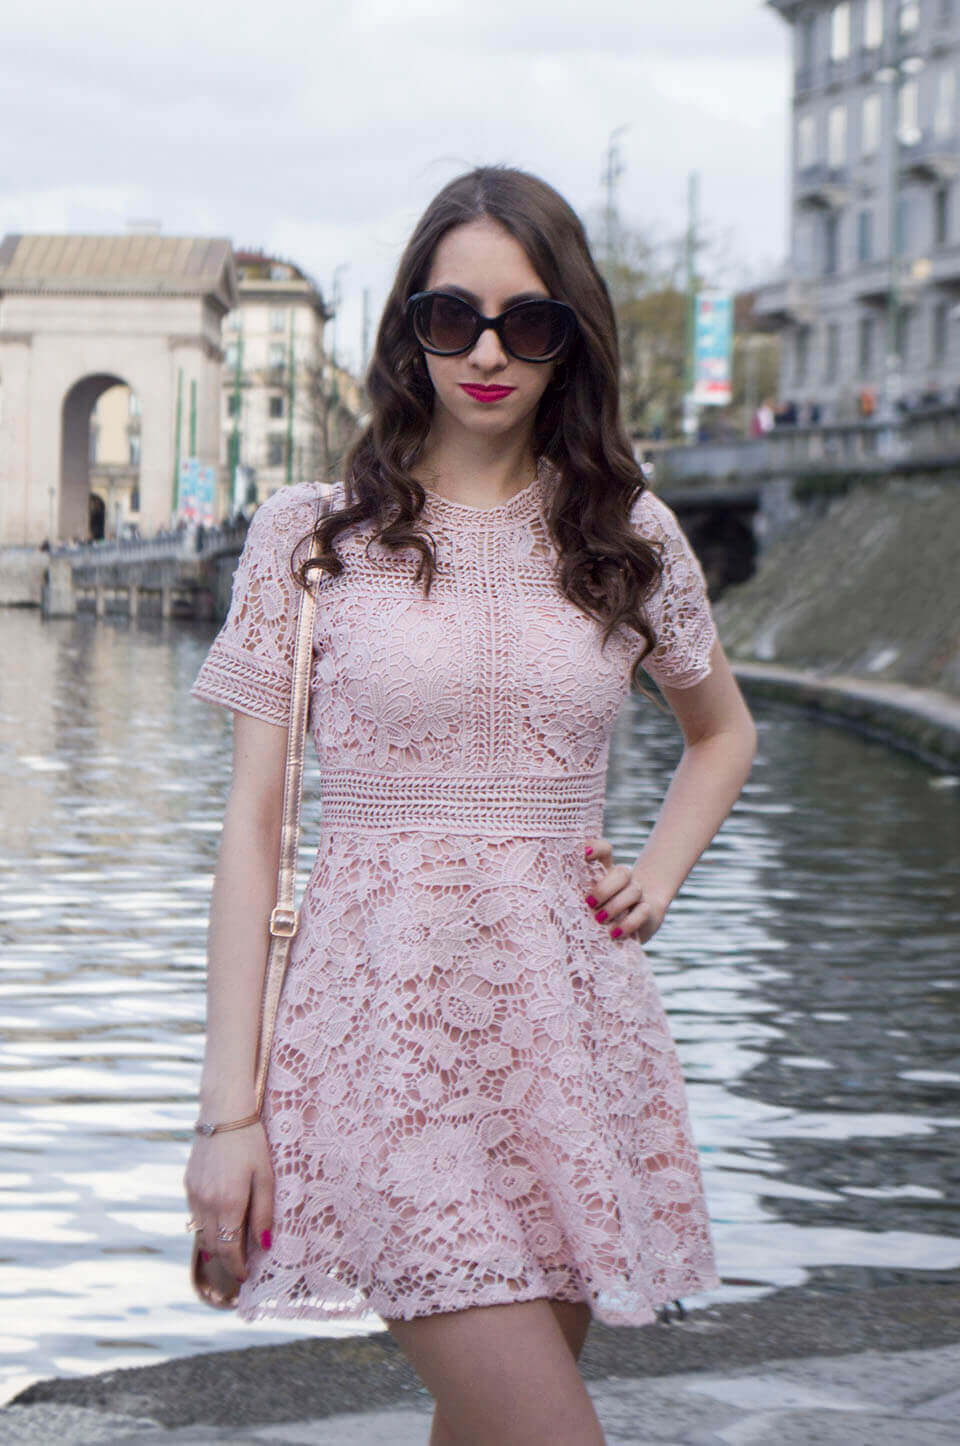 Pink lace dress - Manu Luize outfit